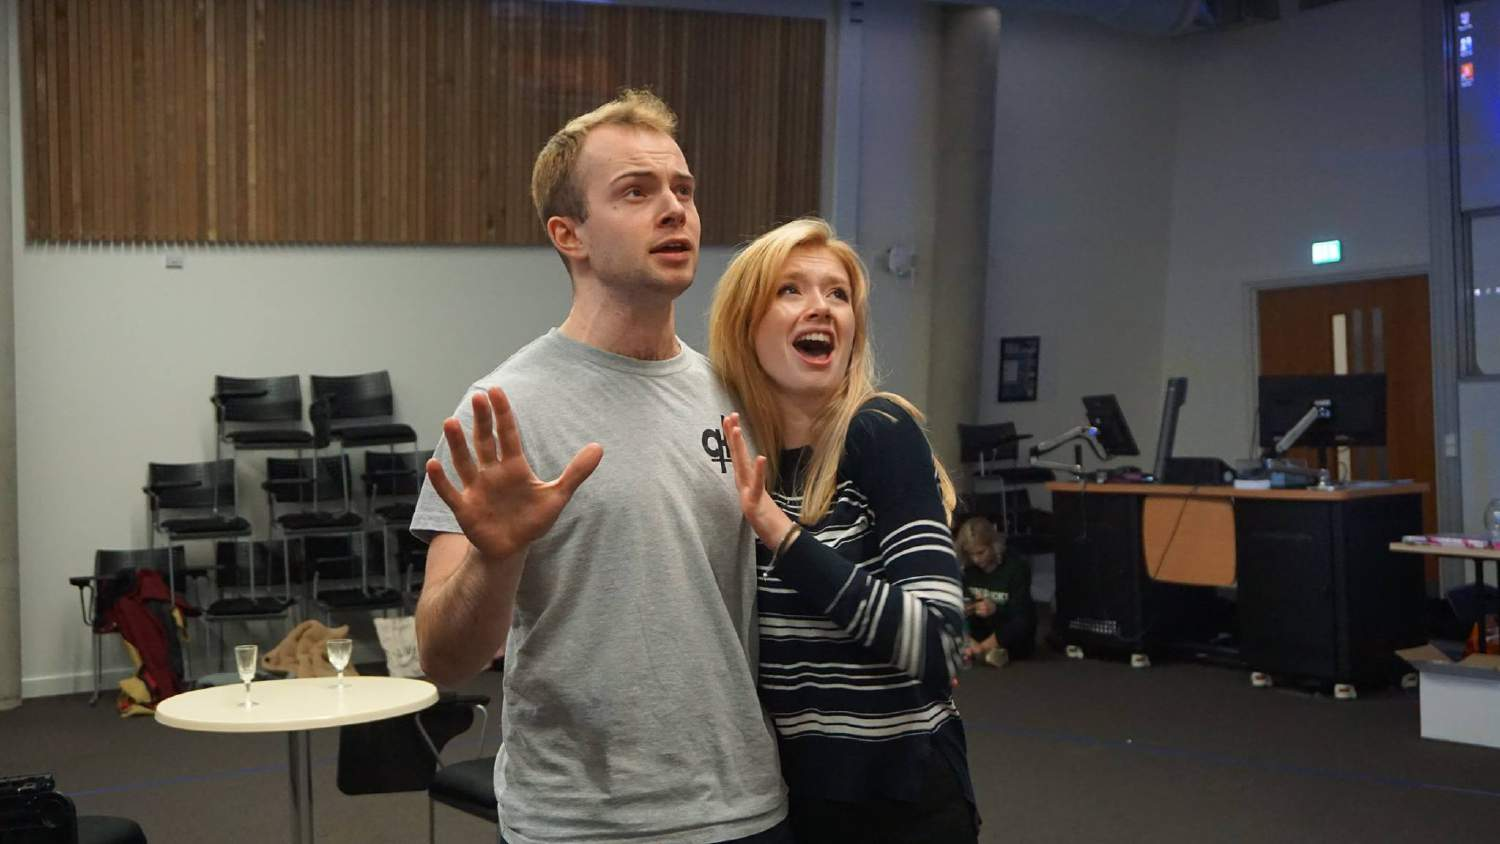 Shining the Spotlight on Campus Productions